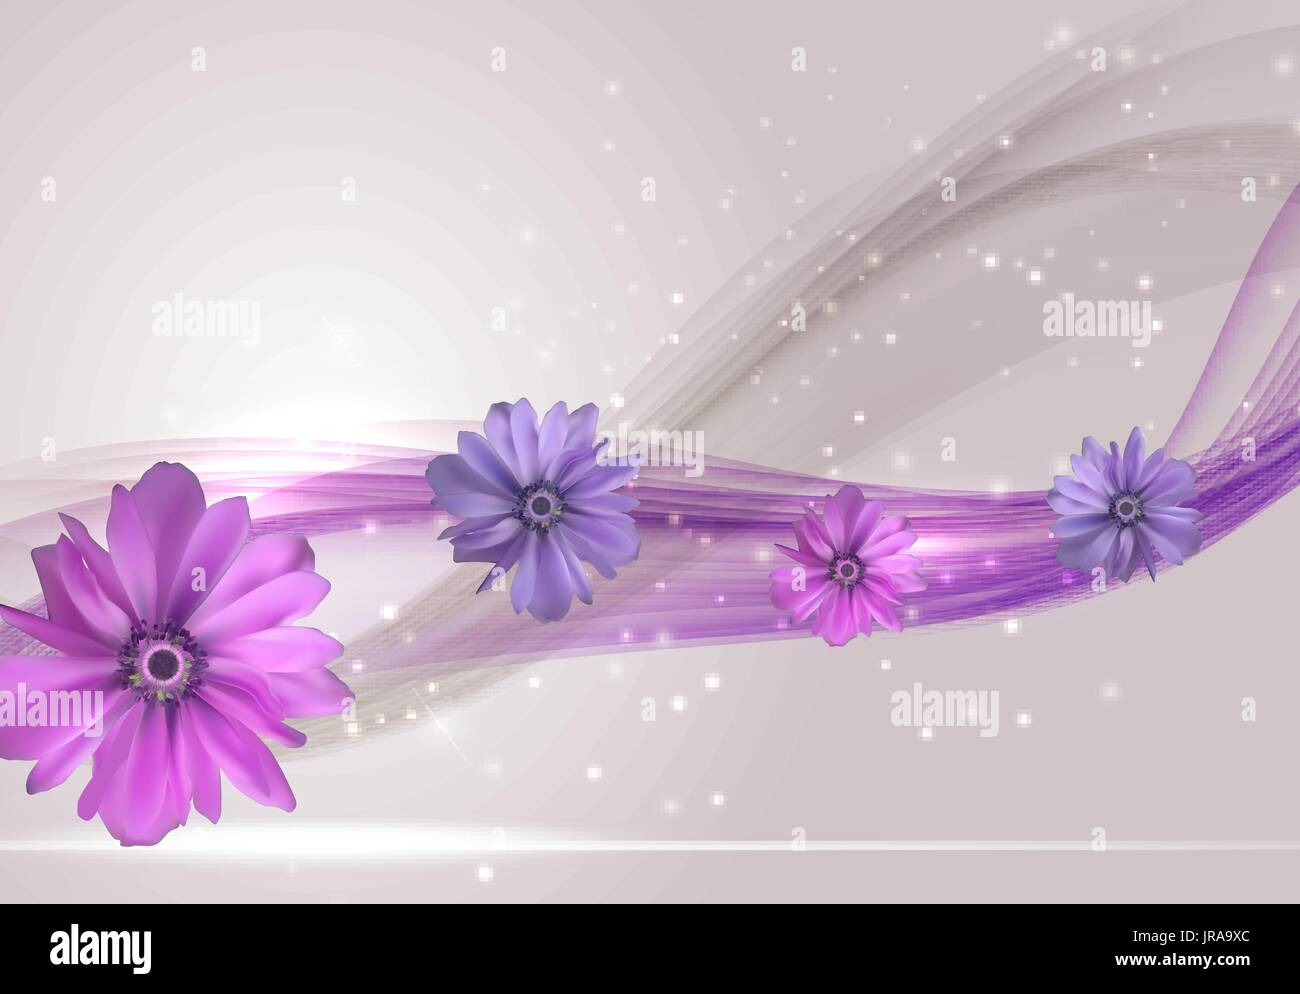 Abstract Anemone Flower Realistic Vector Frame Background - Stock Vector